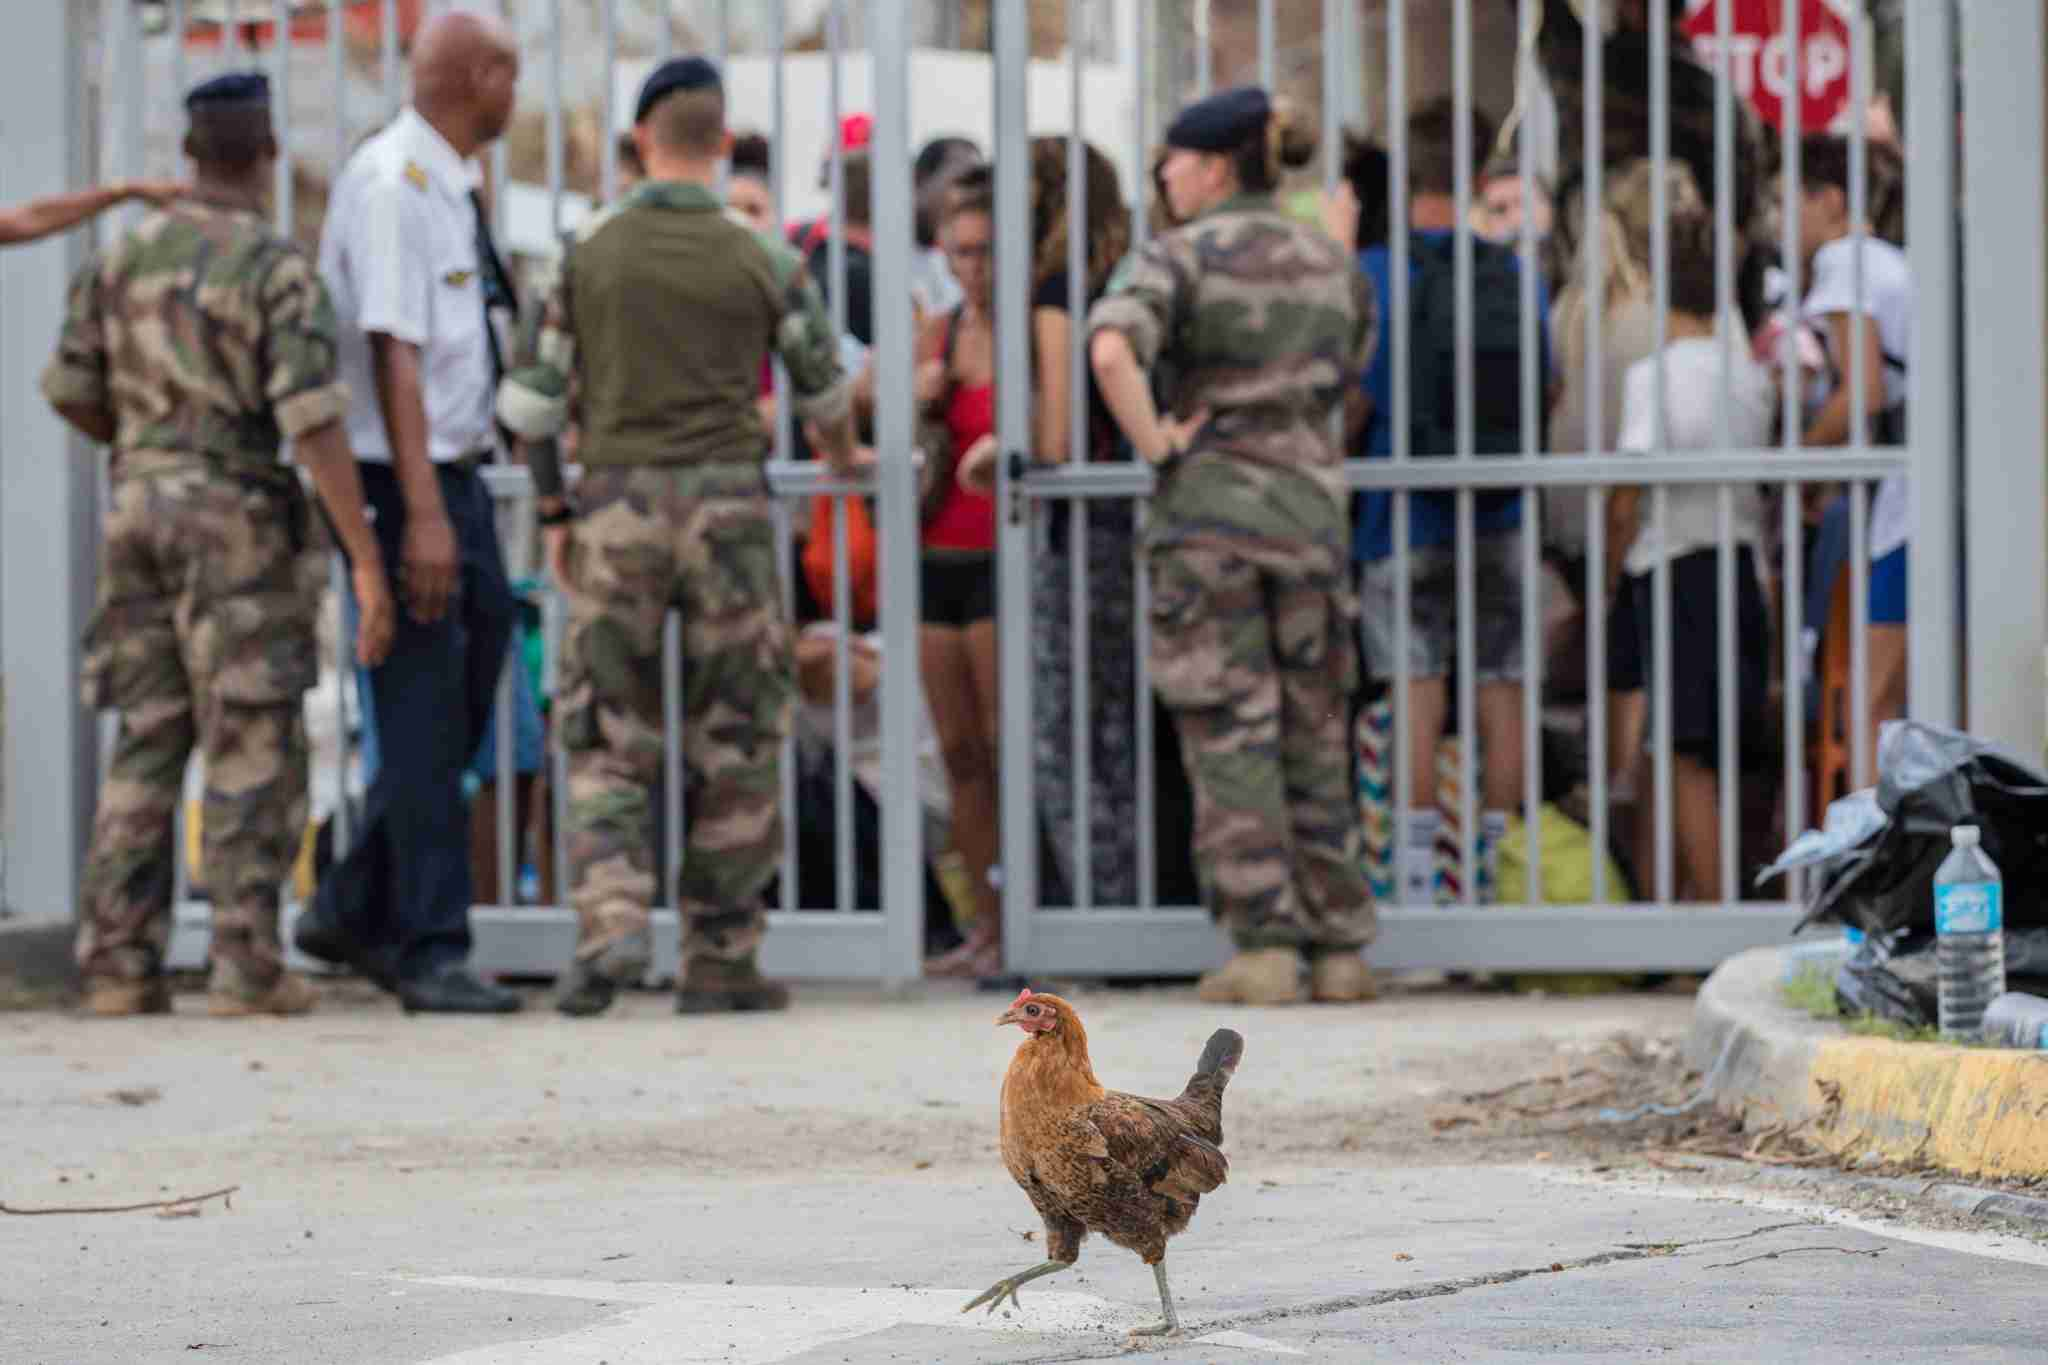 The French army secures access to the airport of Saint Martin on September 10, 2017 (Image by Aurelien Morissard/IP3/Getty Images)